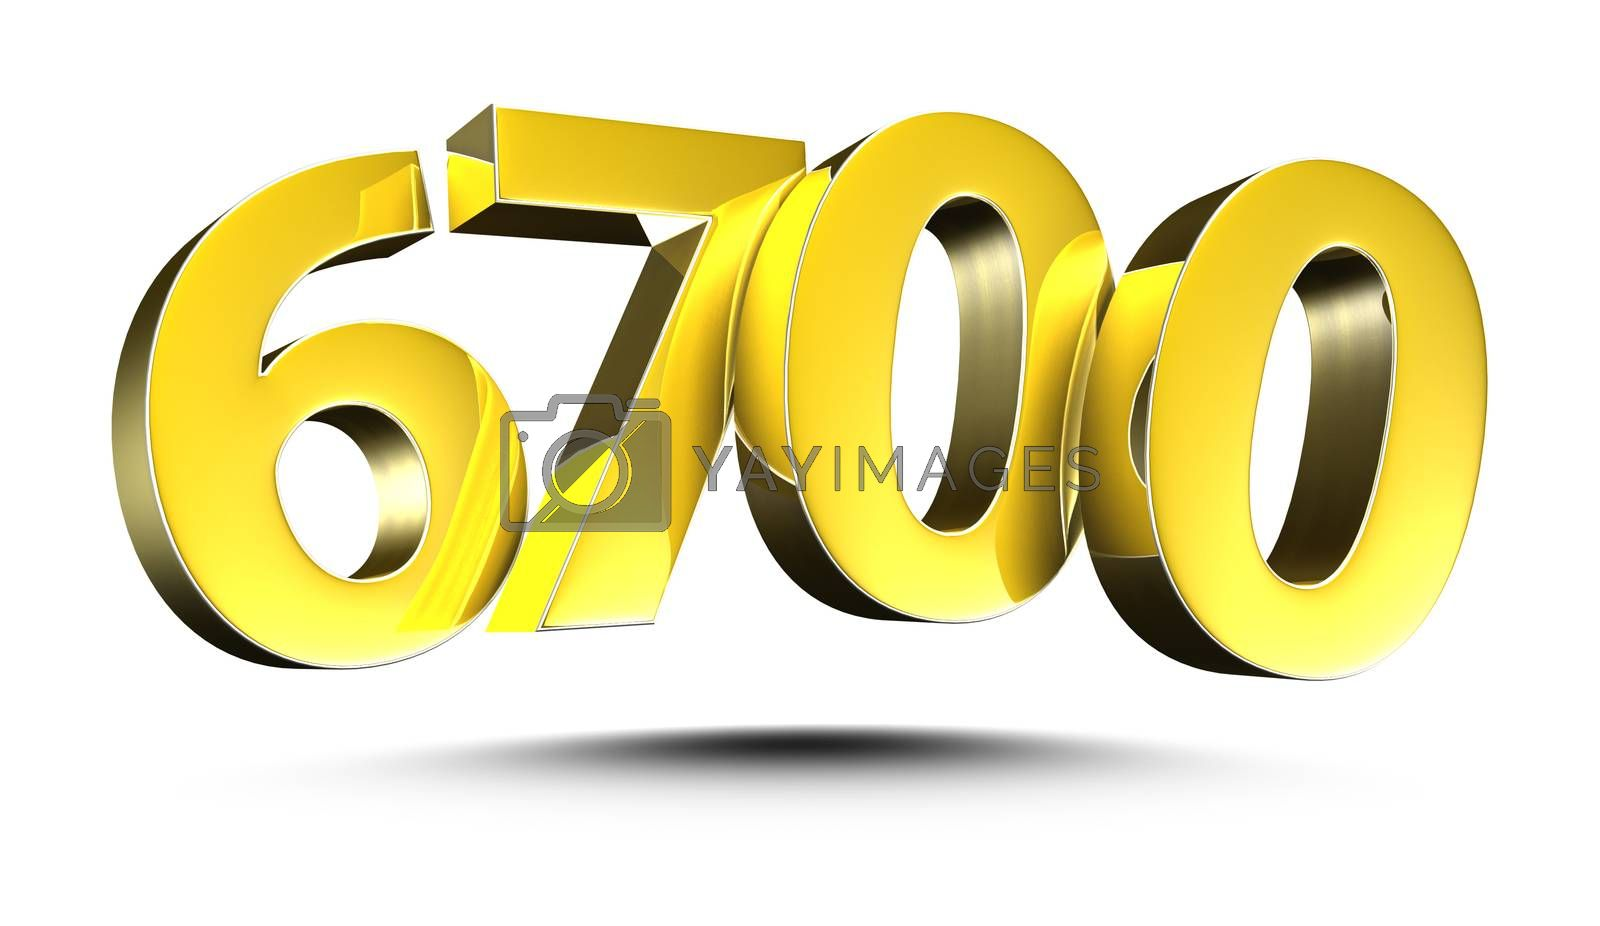 3D illustration Golden number 6700 isolated on a white background.(with Clipping Path).